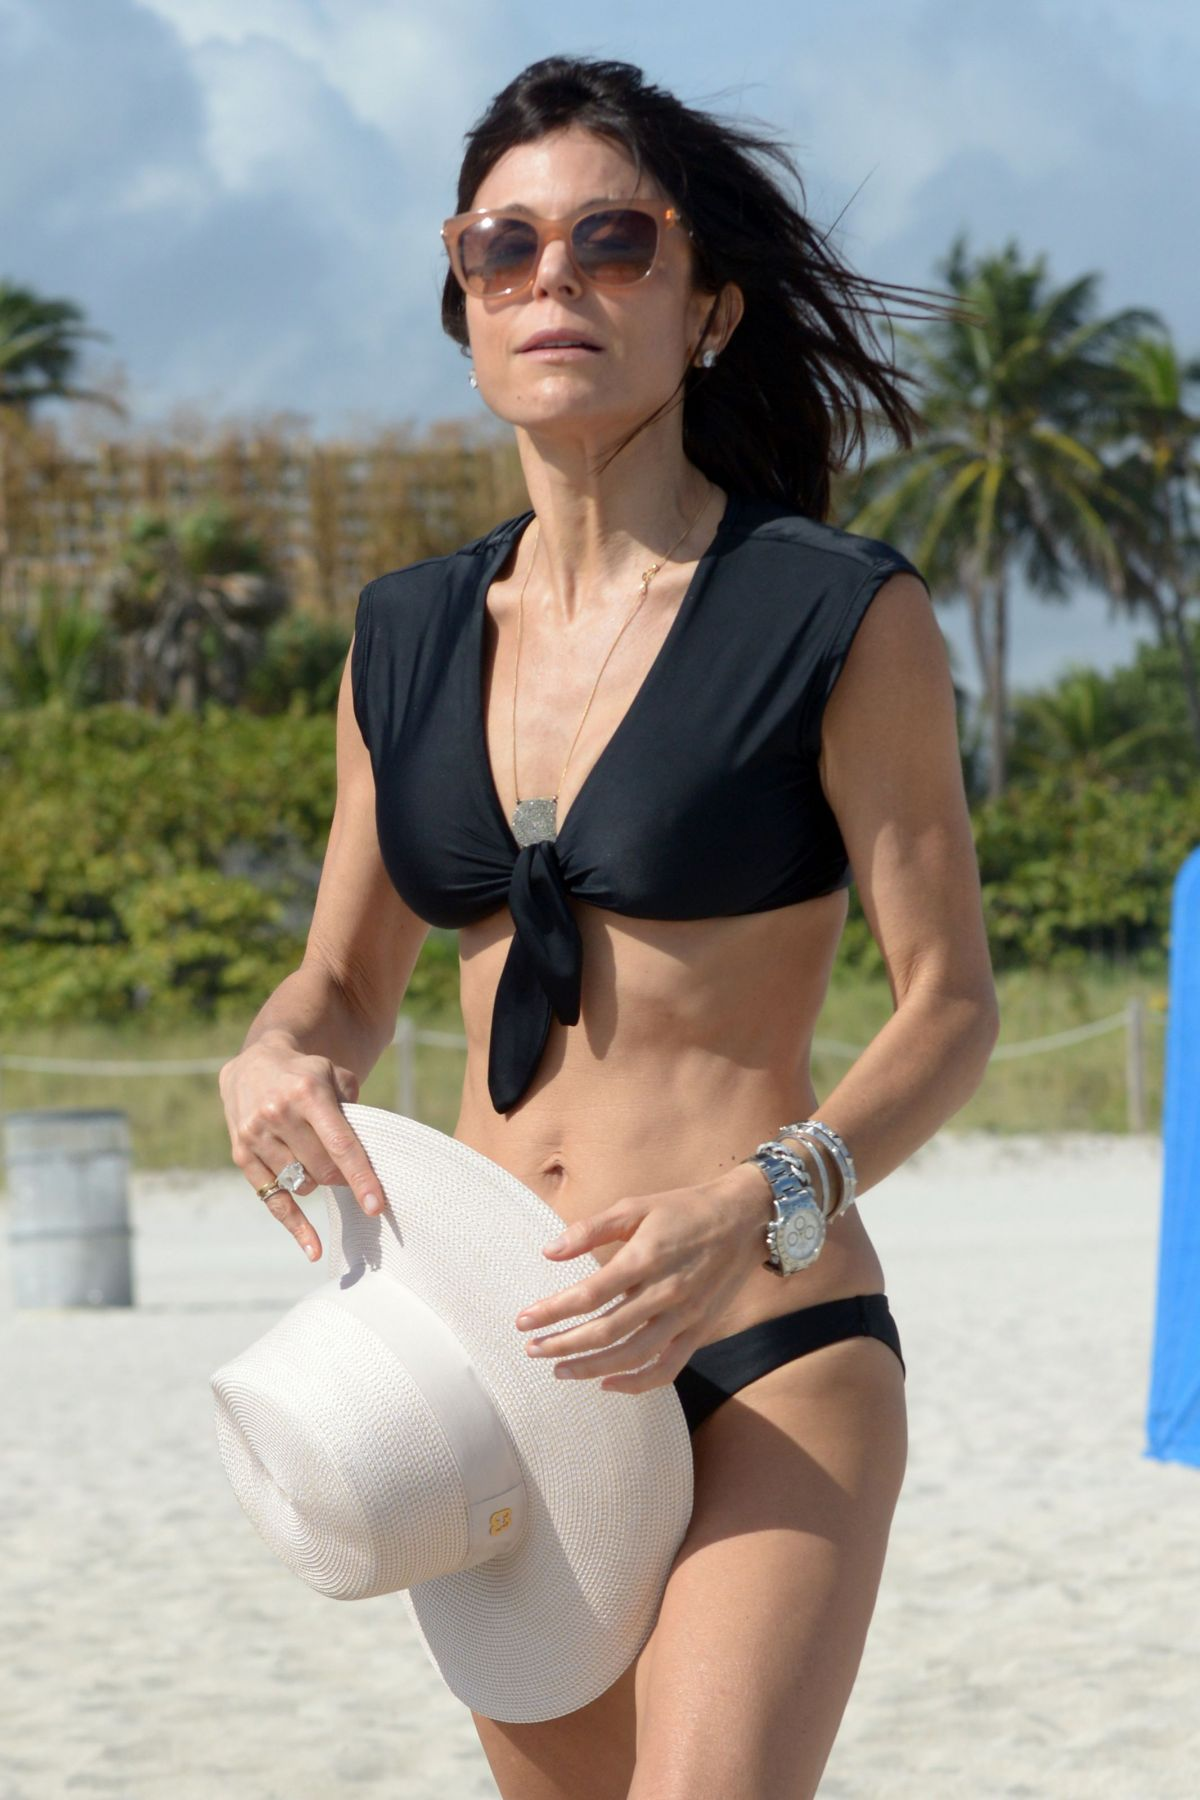 BETHENNY FRANKEL in Bikini on the Beach in Miami 12/05/2016   bethenny-frankel-in-bikini-on-the-beach-in-miami-12-05-2016_34